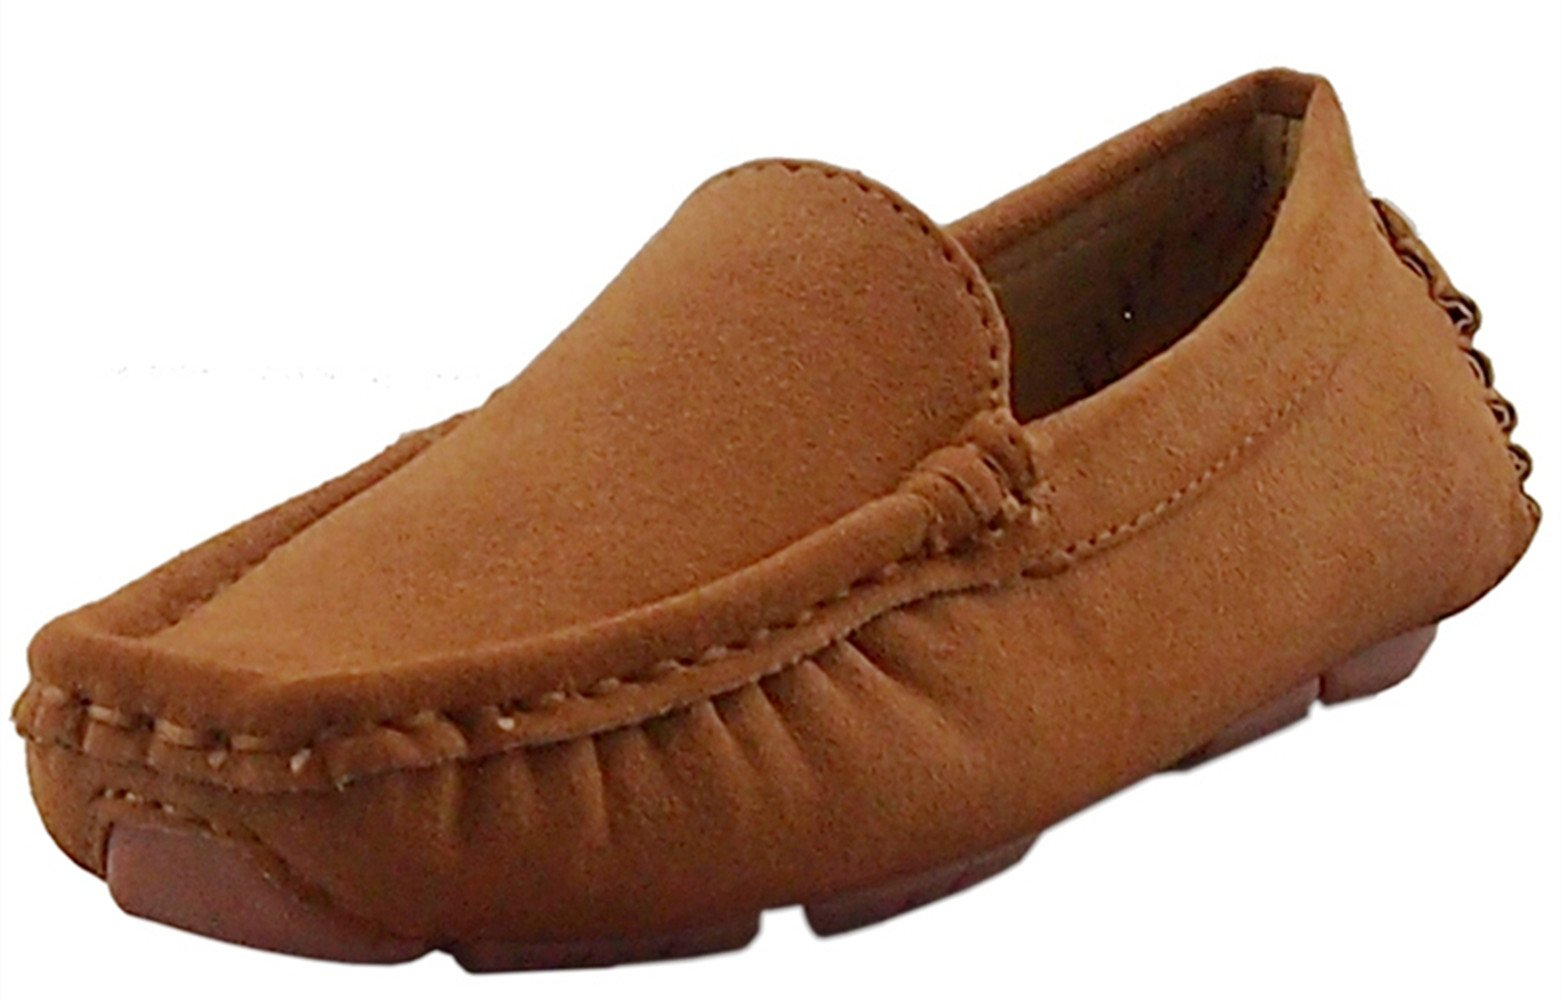 DADAWEN Girl's Boy's Suede Slip-on Loafers Oxford Shoes, Brown, US Size 6 M Toddler